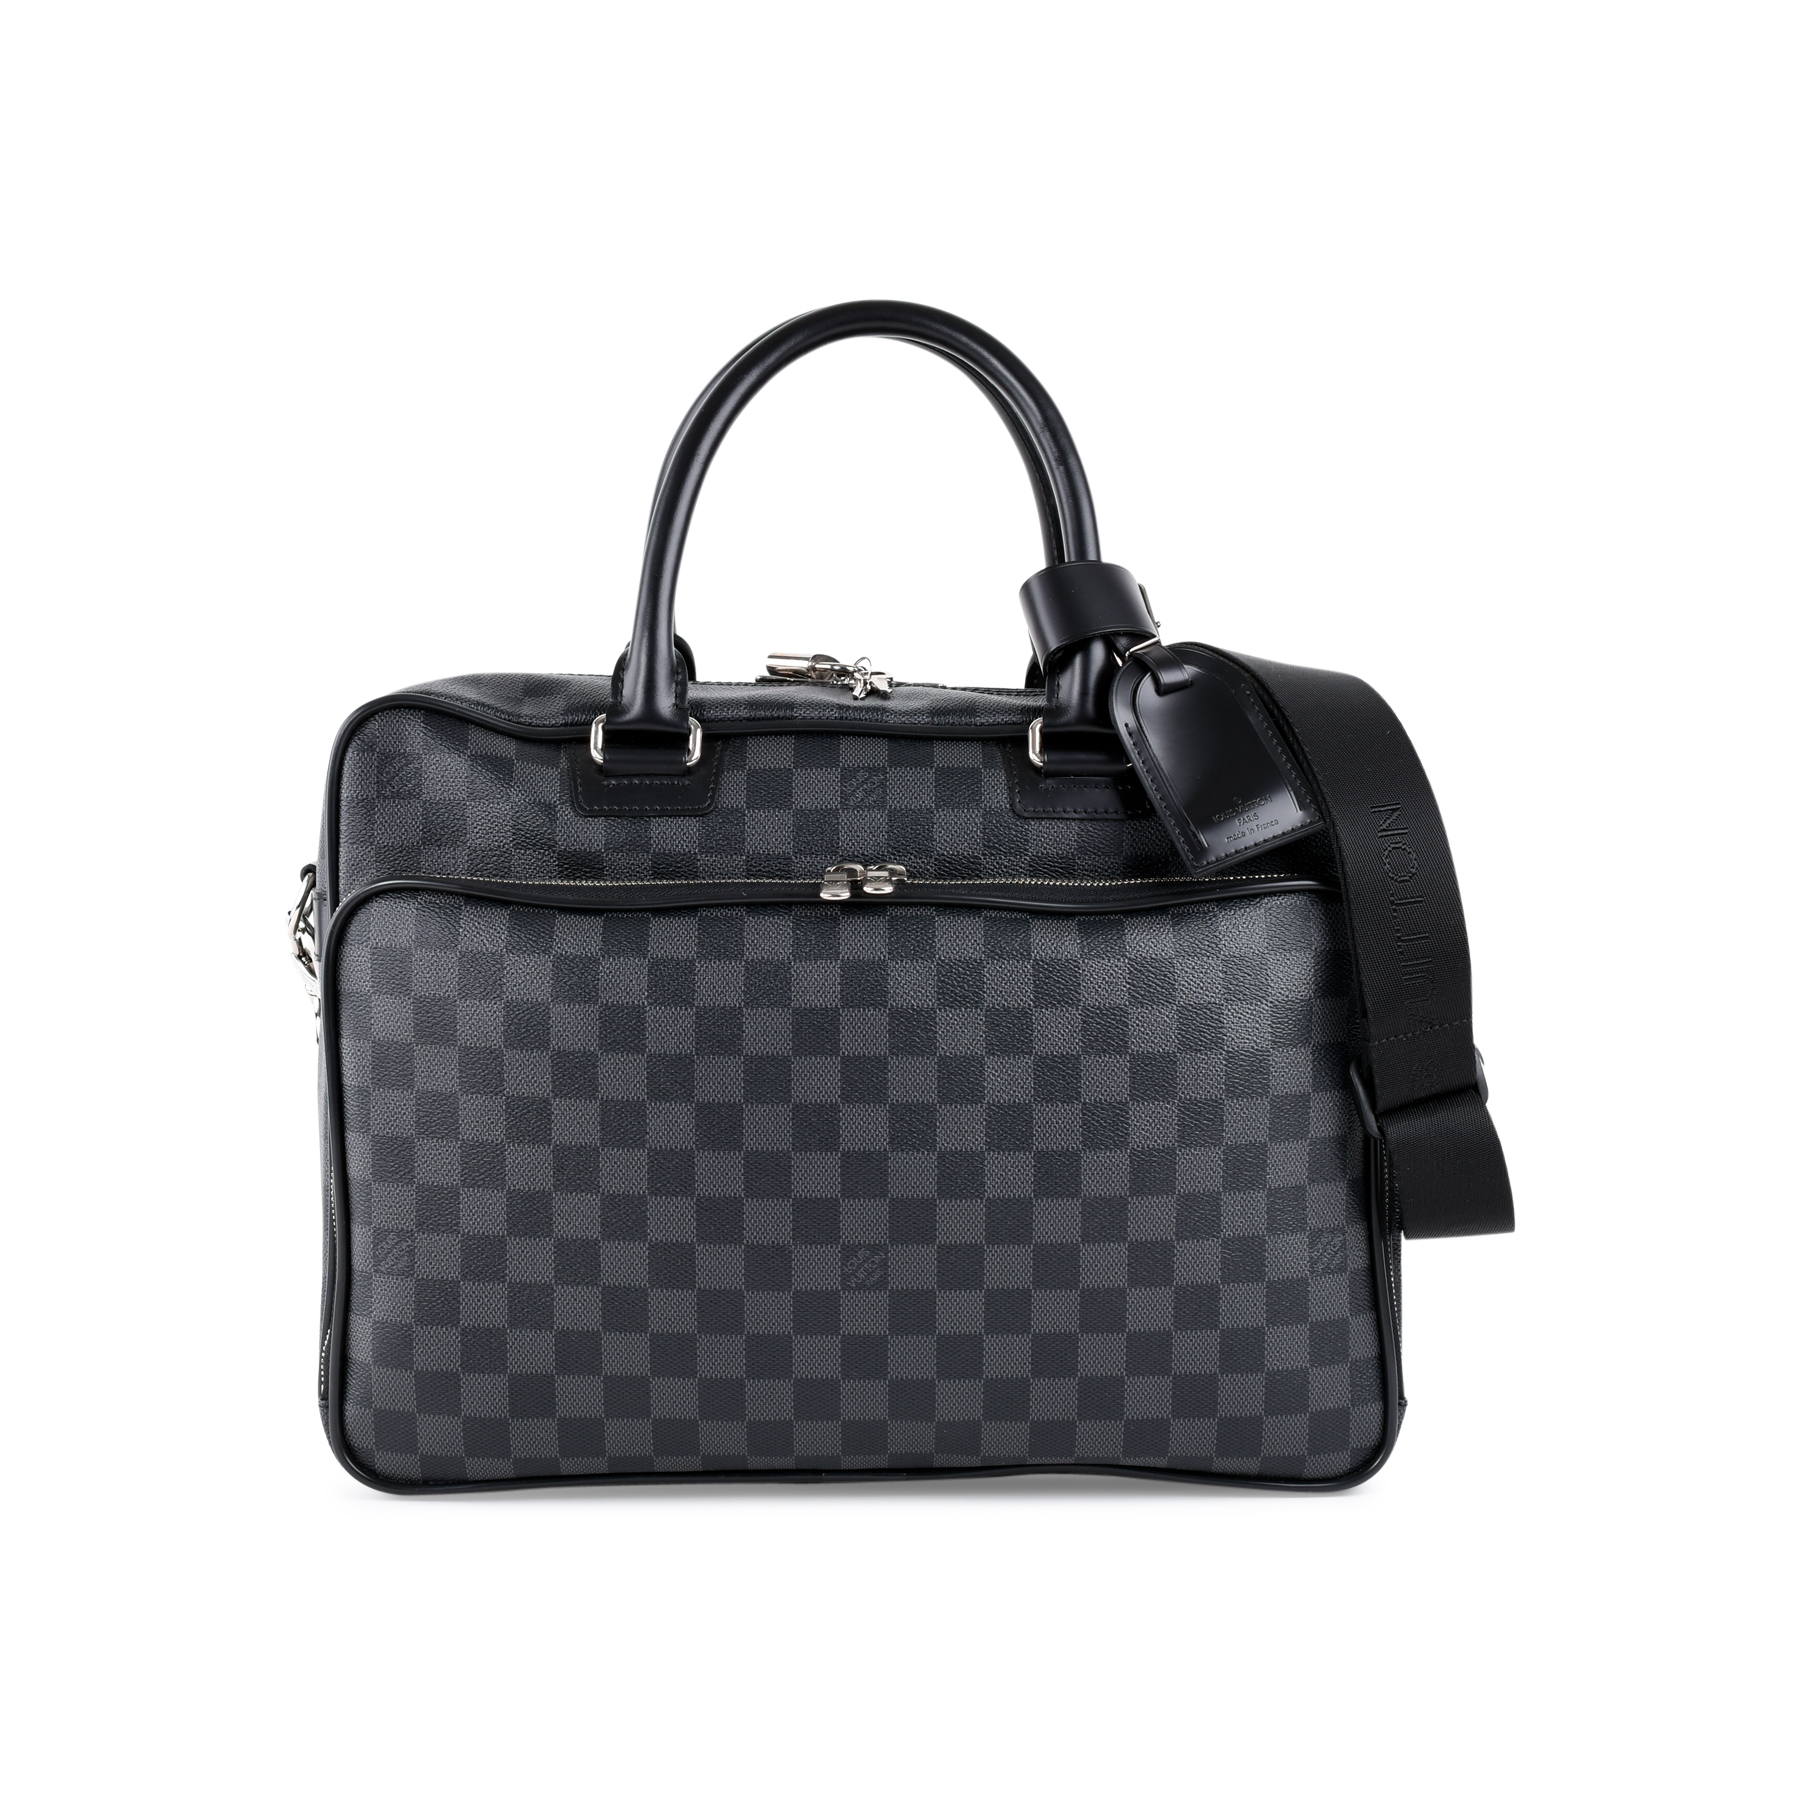 e7f4a023314 Authentic Second Hand Louis Vuitton Icare Damier Graphite Bag  (PSS-462-00052) - THE FIFTH COLLECTION